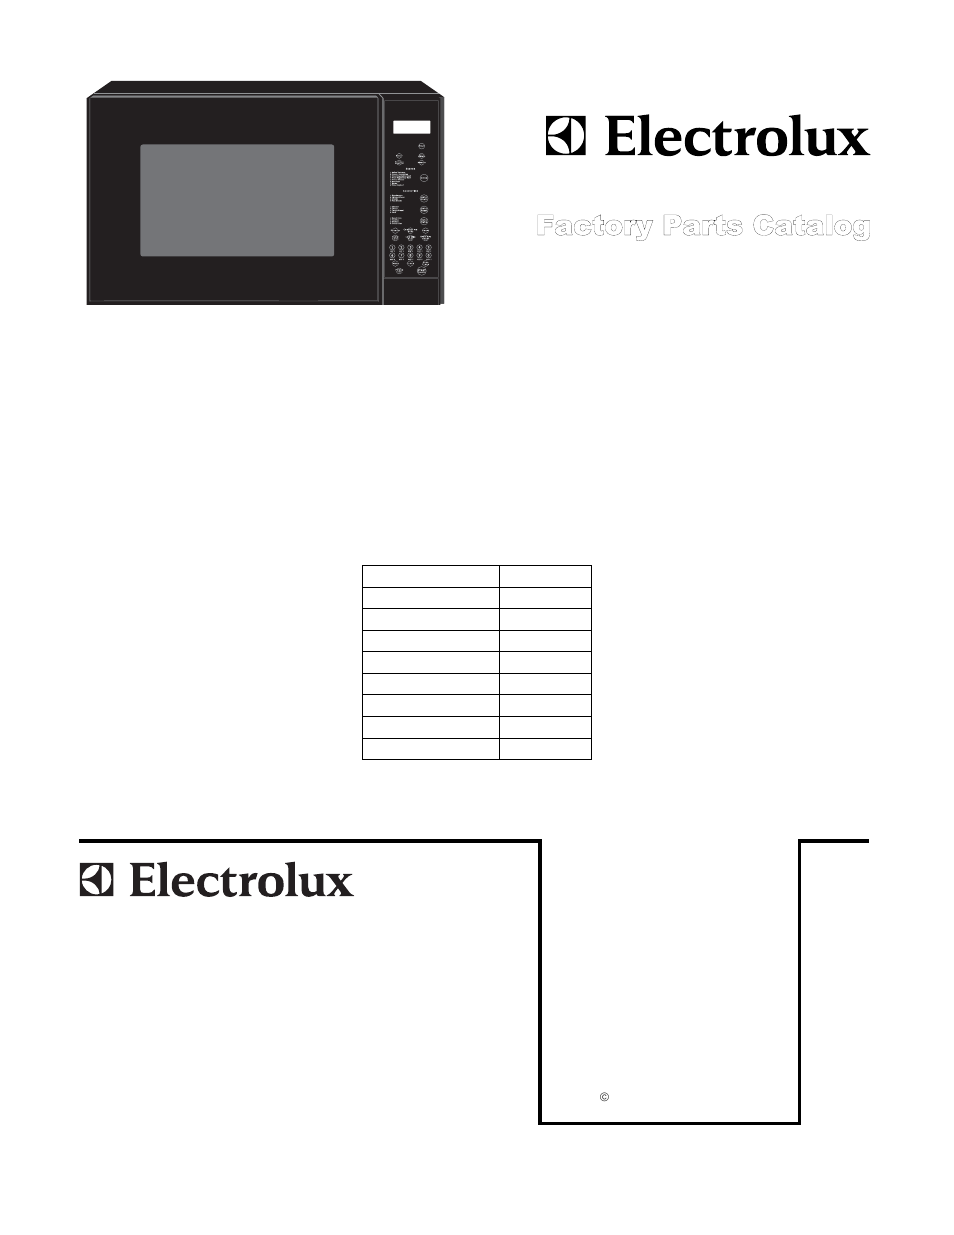 electrolux e30mo65gssa user manual 8 pages also for e30mo65g rh manualsdir com